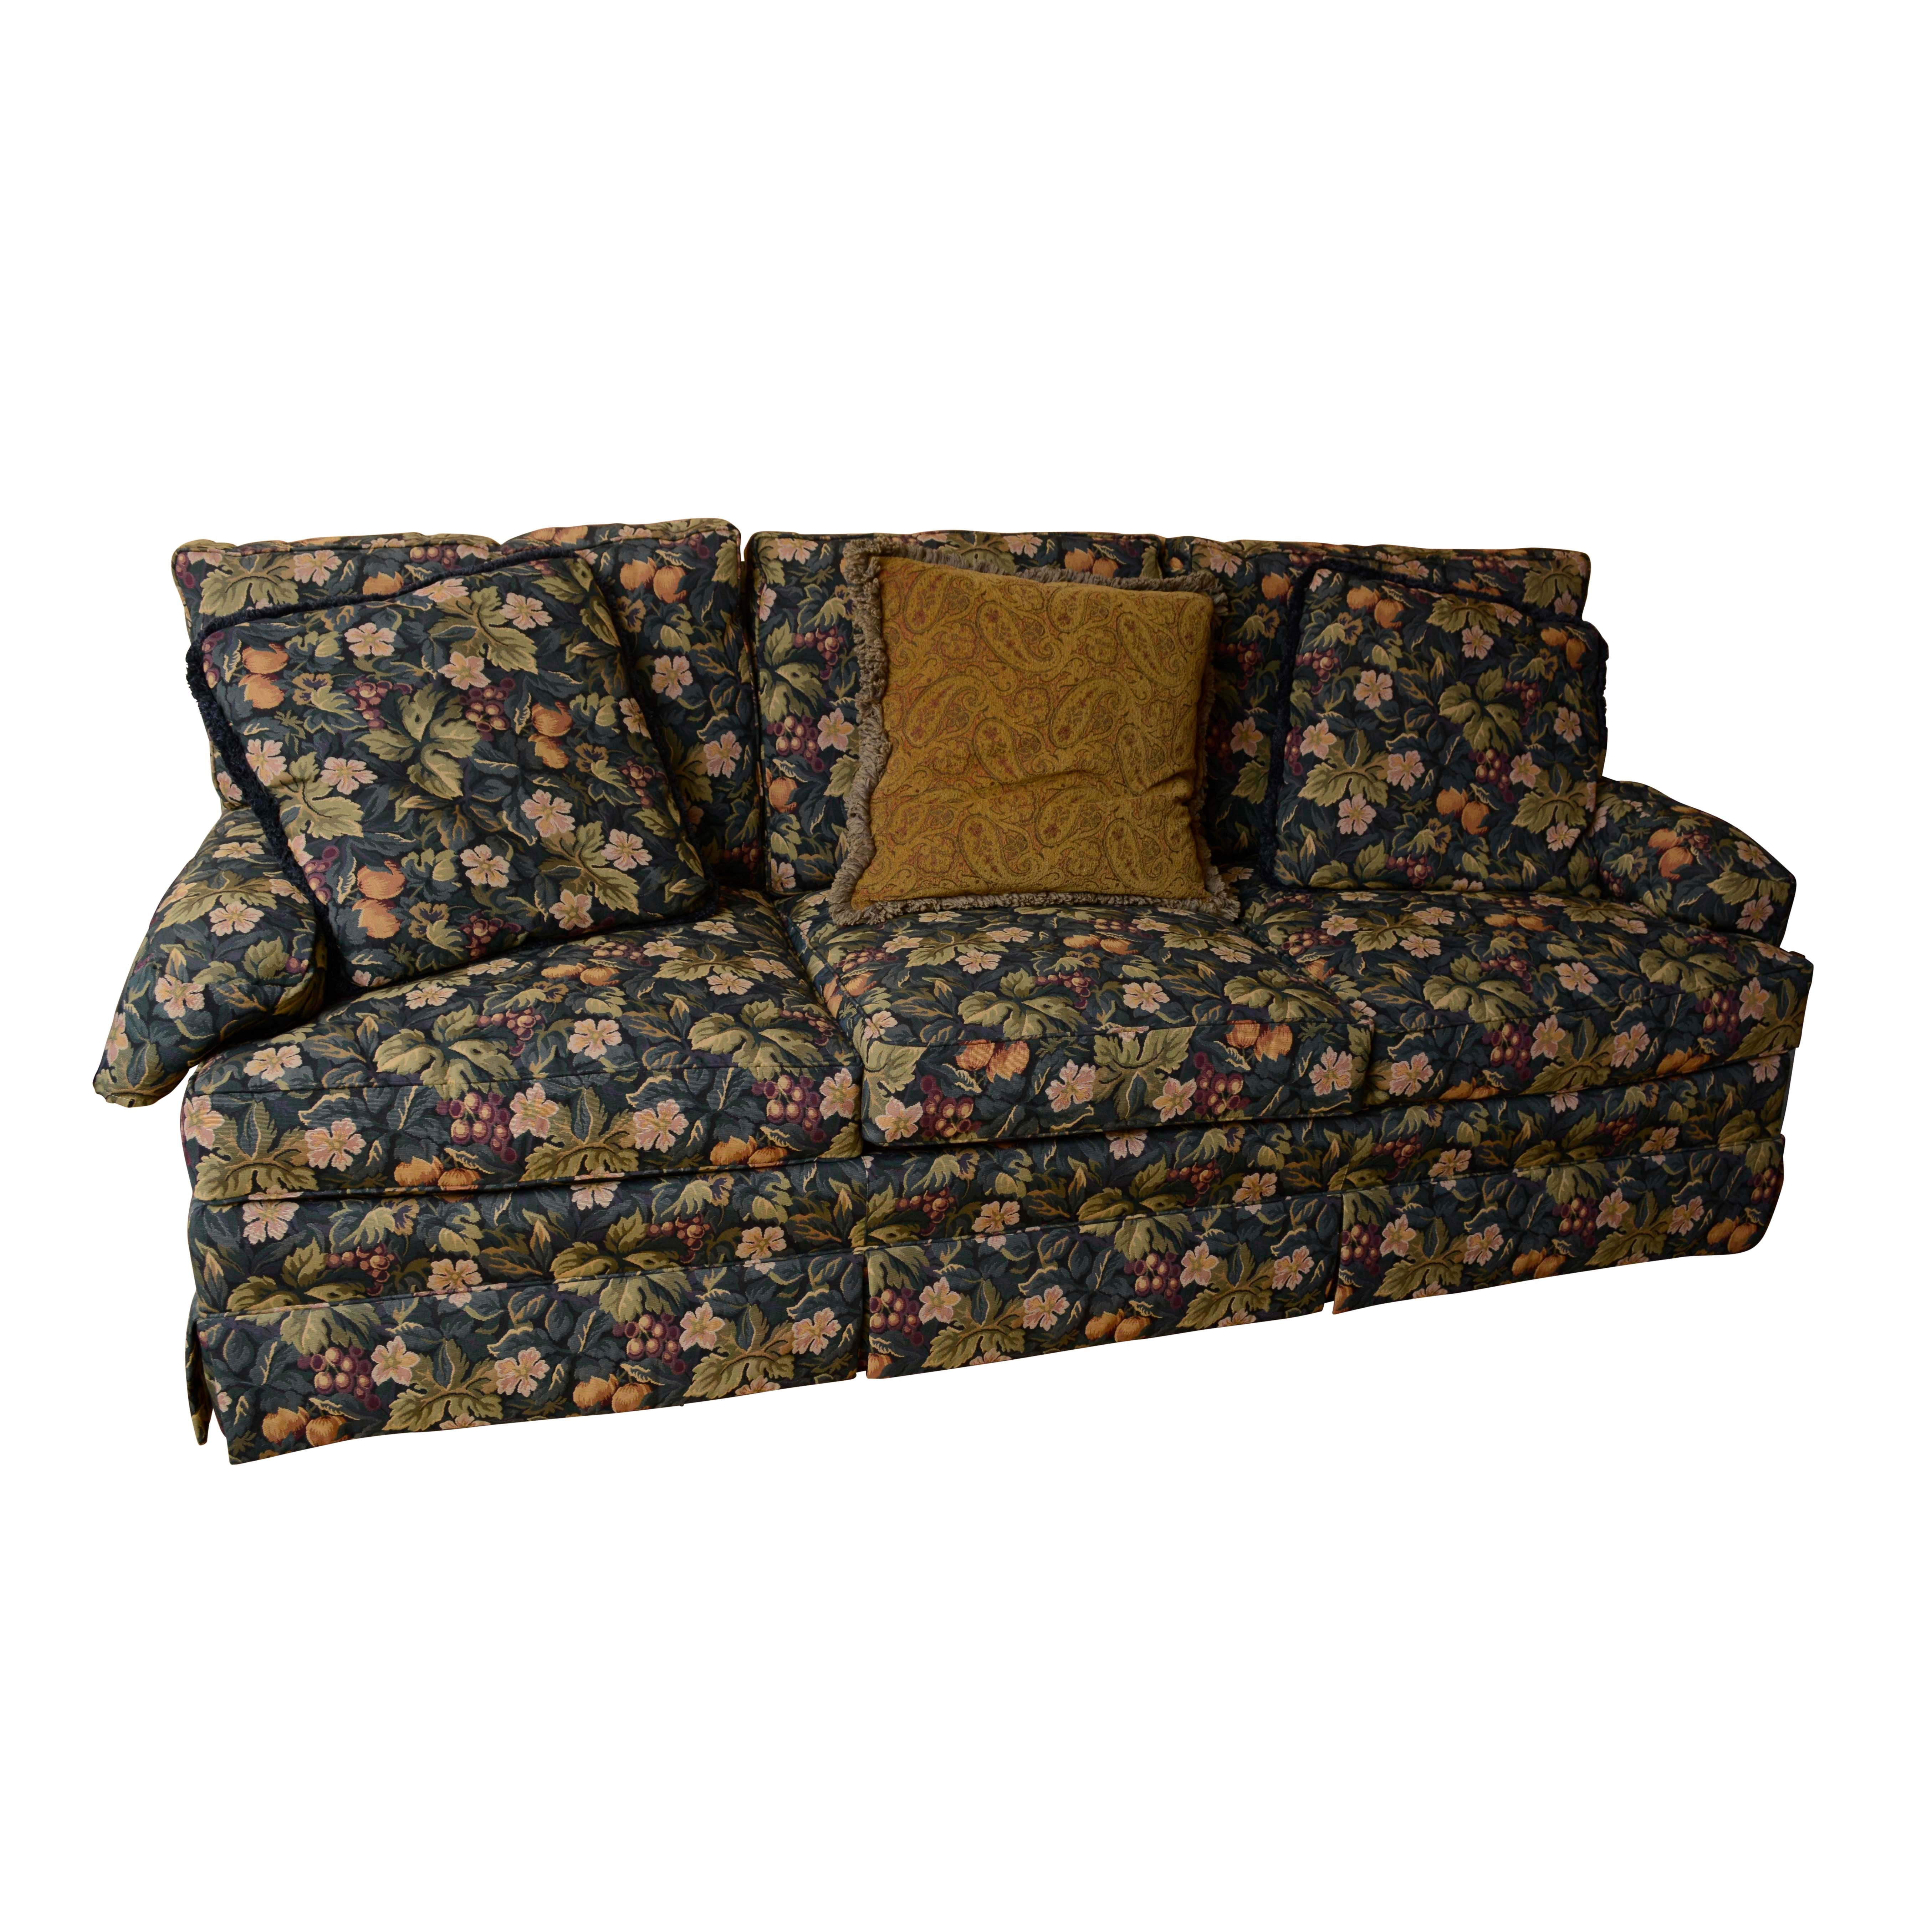 Fruit and Foliage Upholstered Sofa by Hickory Furniture